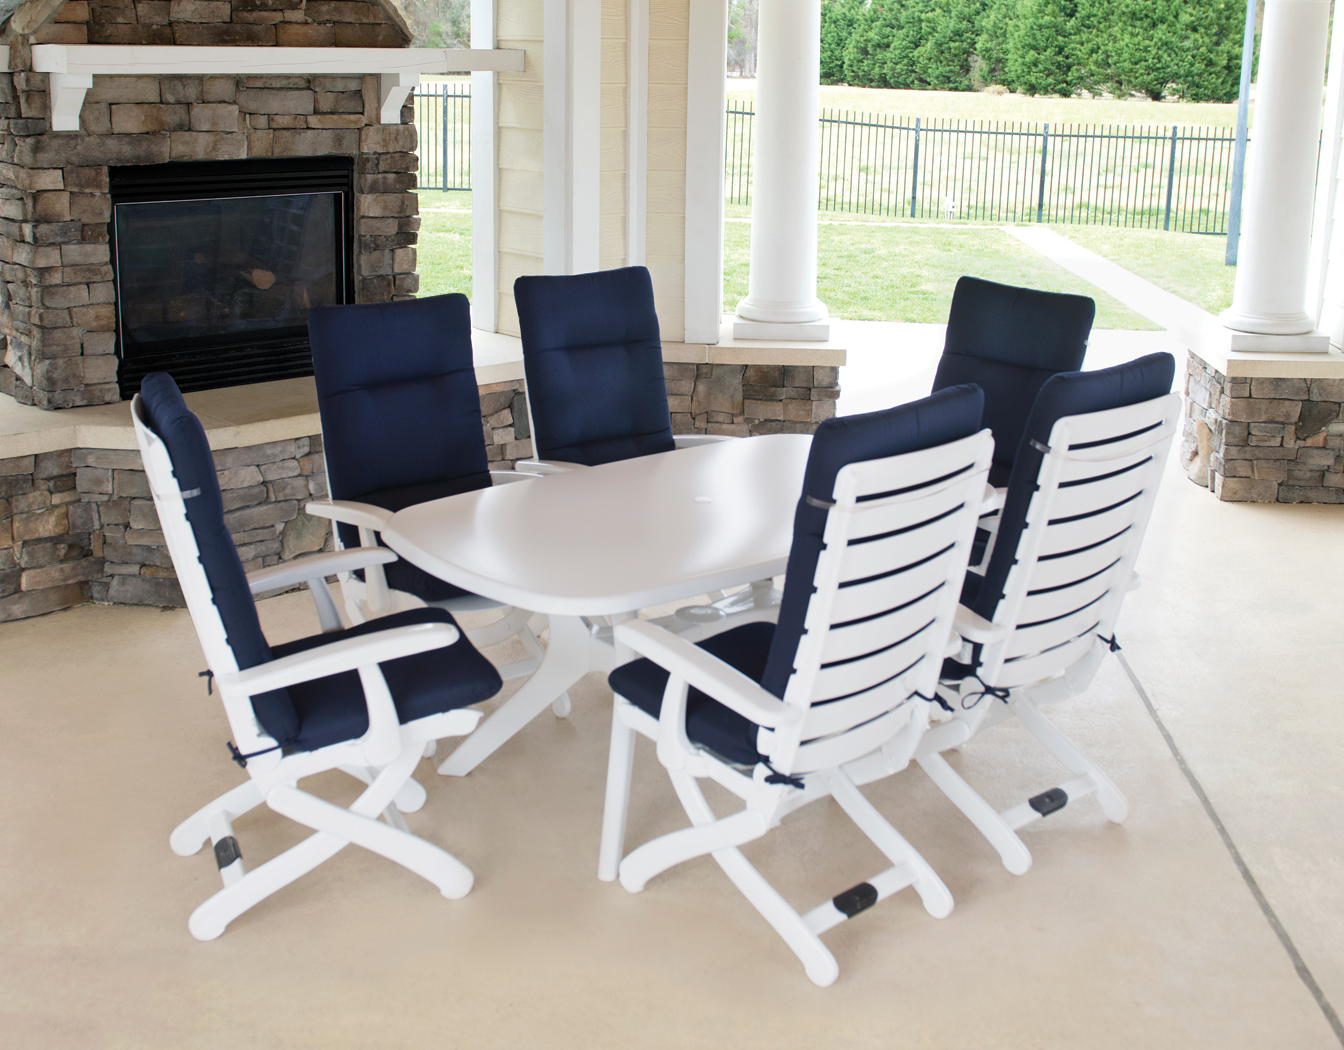 kettler usa table tennis tricycles toys patio furniture u0026 fitness